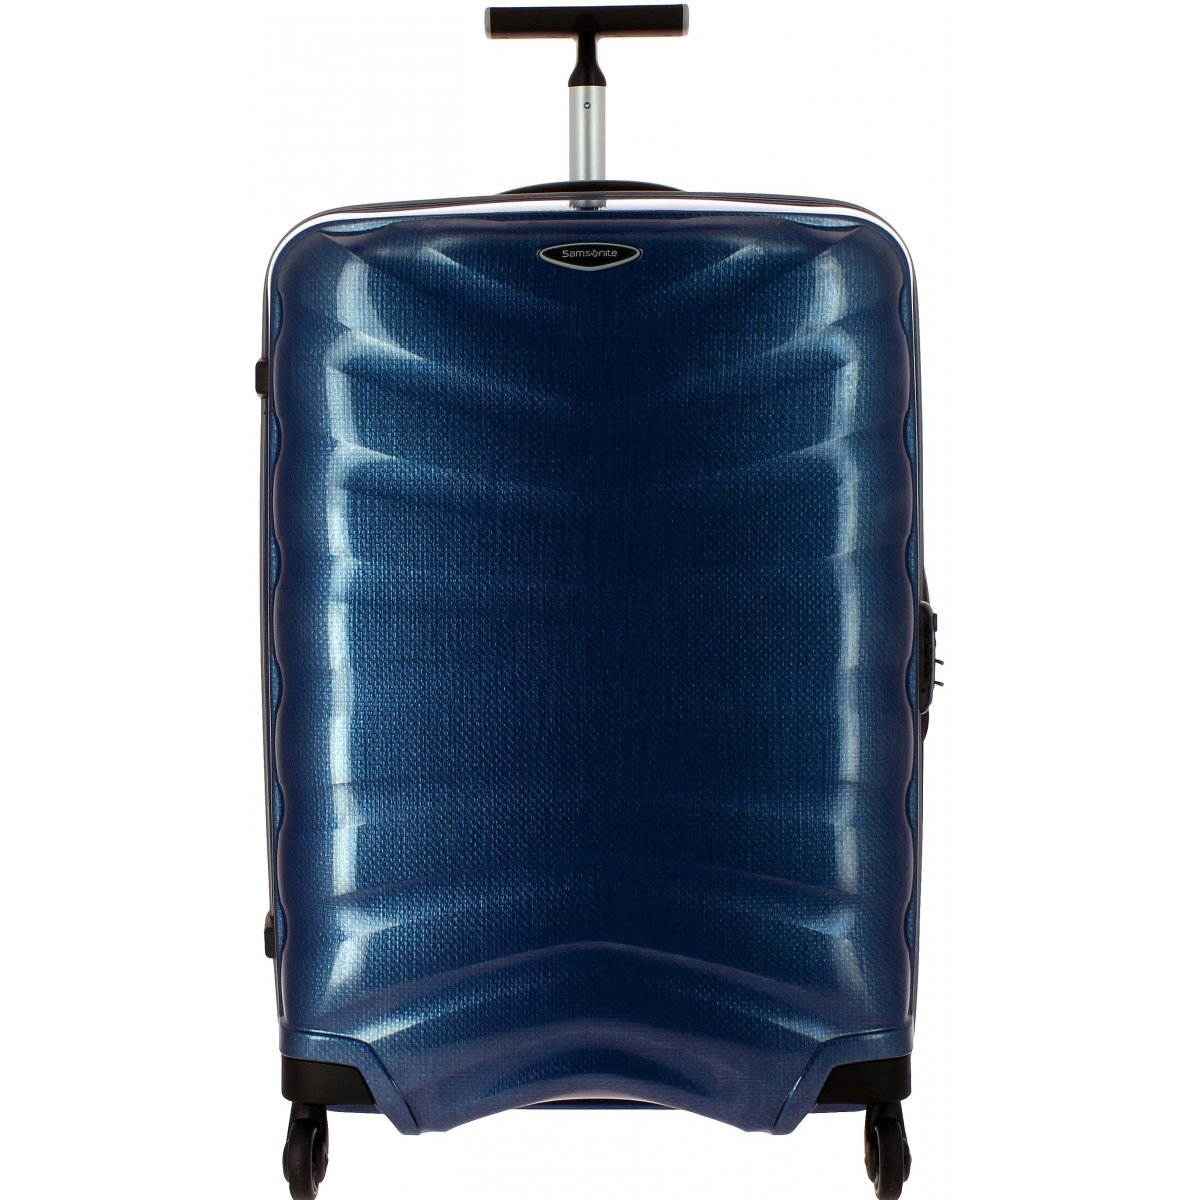 valise samsonite firelite spinner 75 cm firelite61 couleur principale dark blue solde. Black Bedroom Furniture Sets. Home Design Ideas